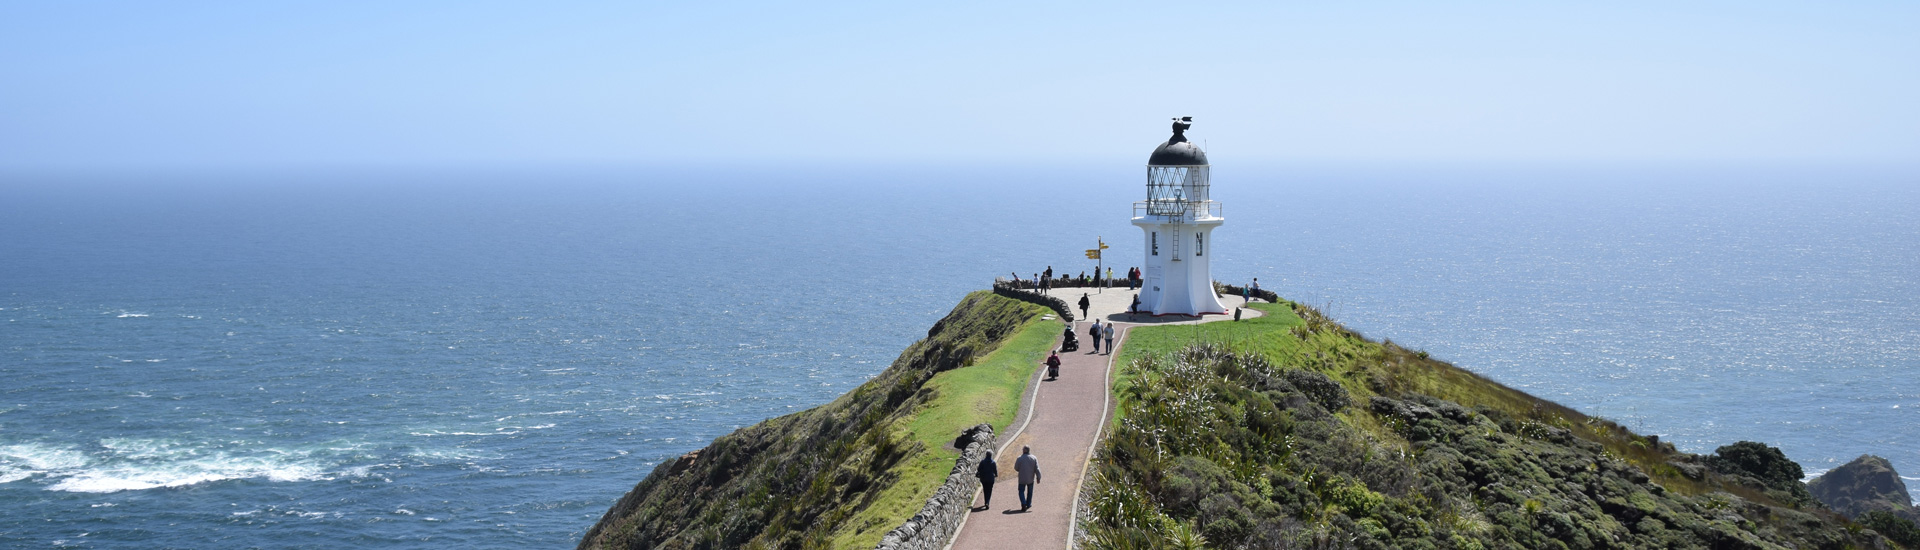 images/covers/04_Cape_Reinga.jpg